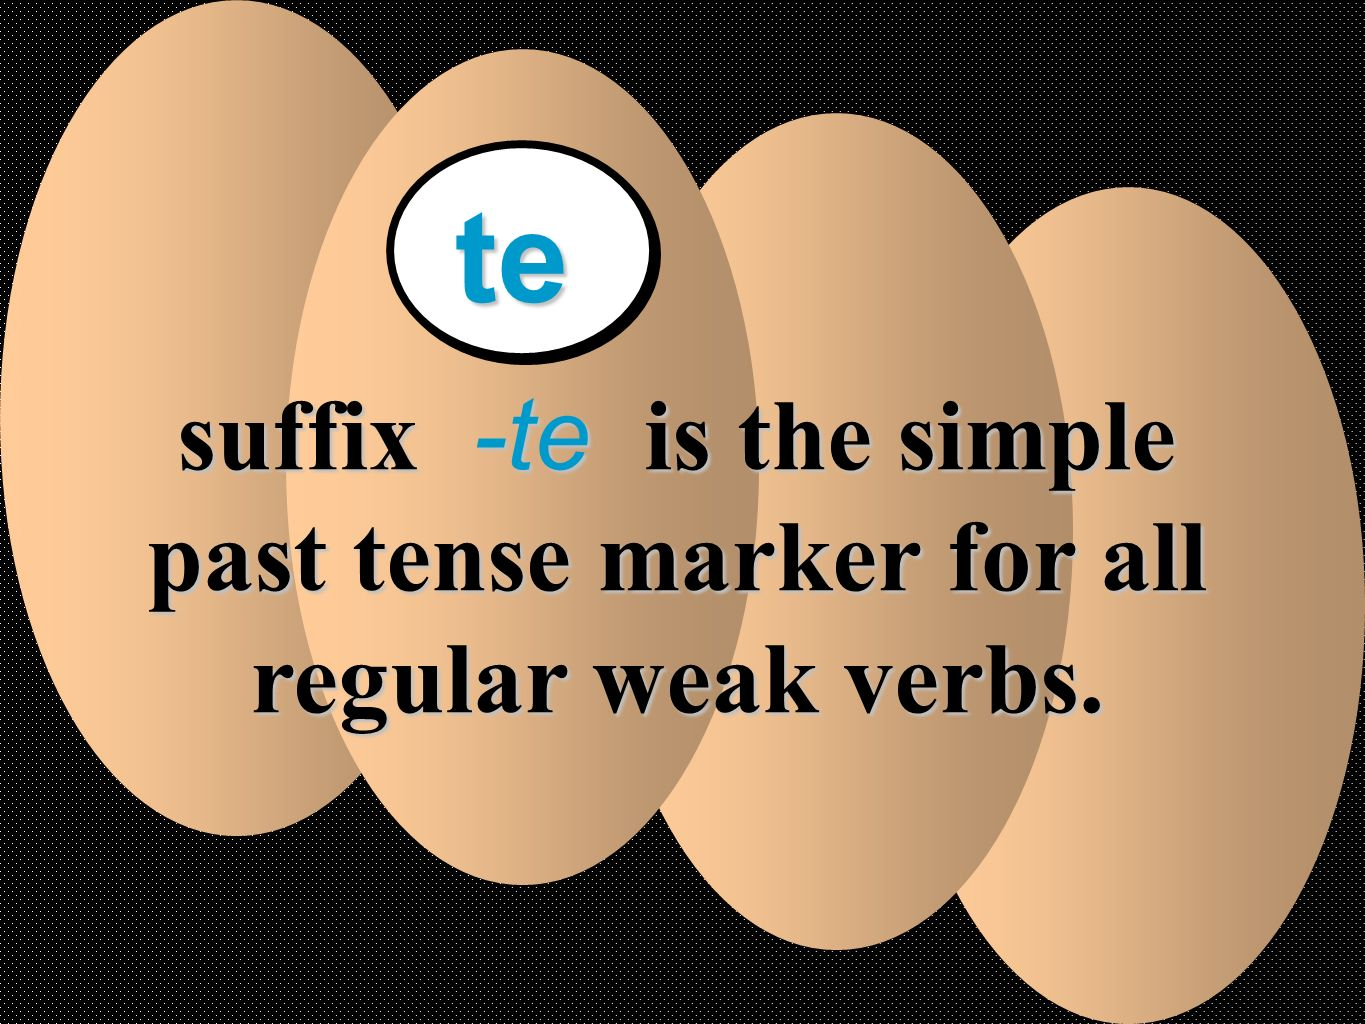 suffix -te is the simple past tense marker for all regular weak verbs.